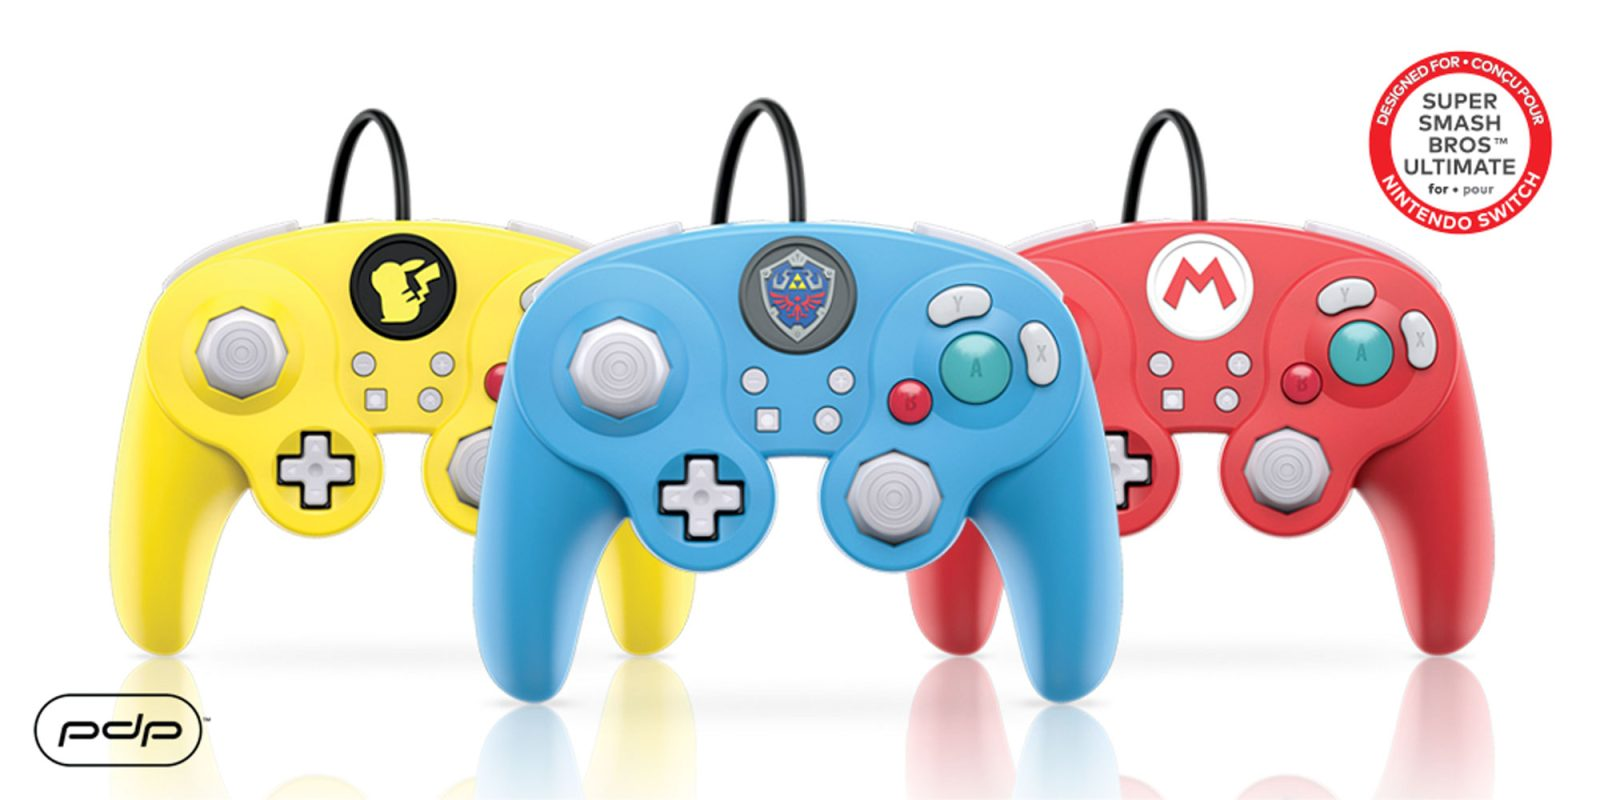 pdp announces its gamecube inspired wired smash pad pro controller